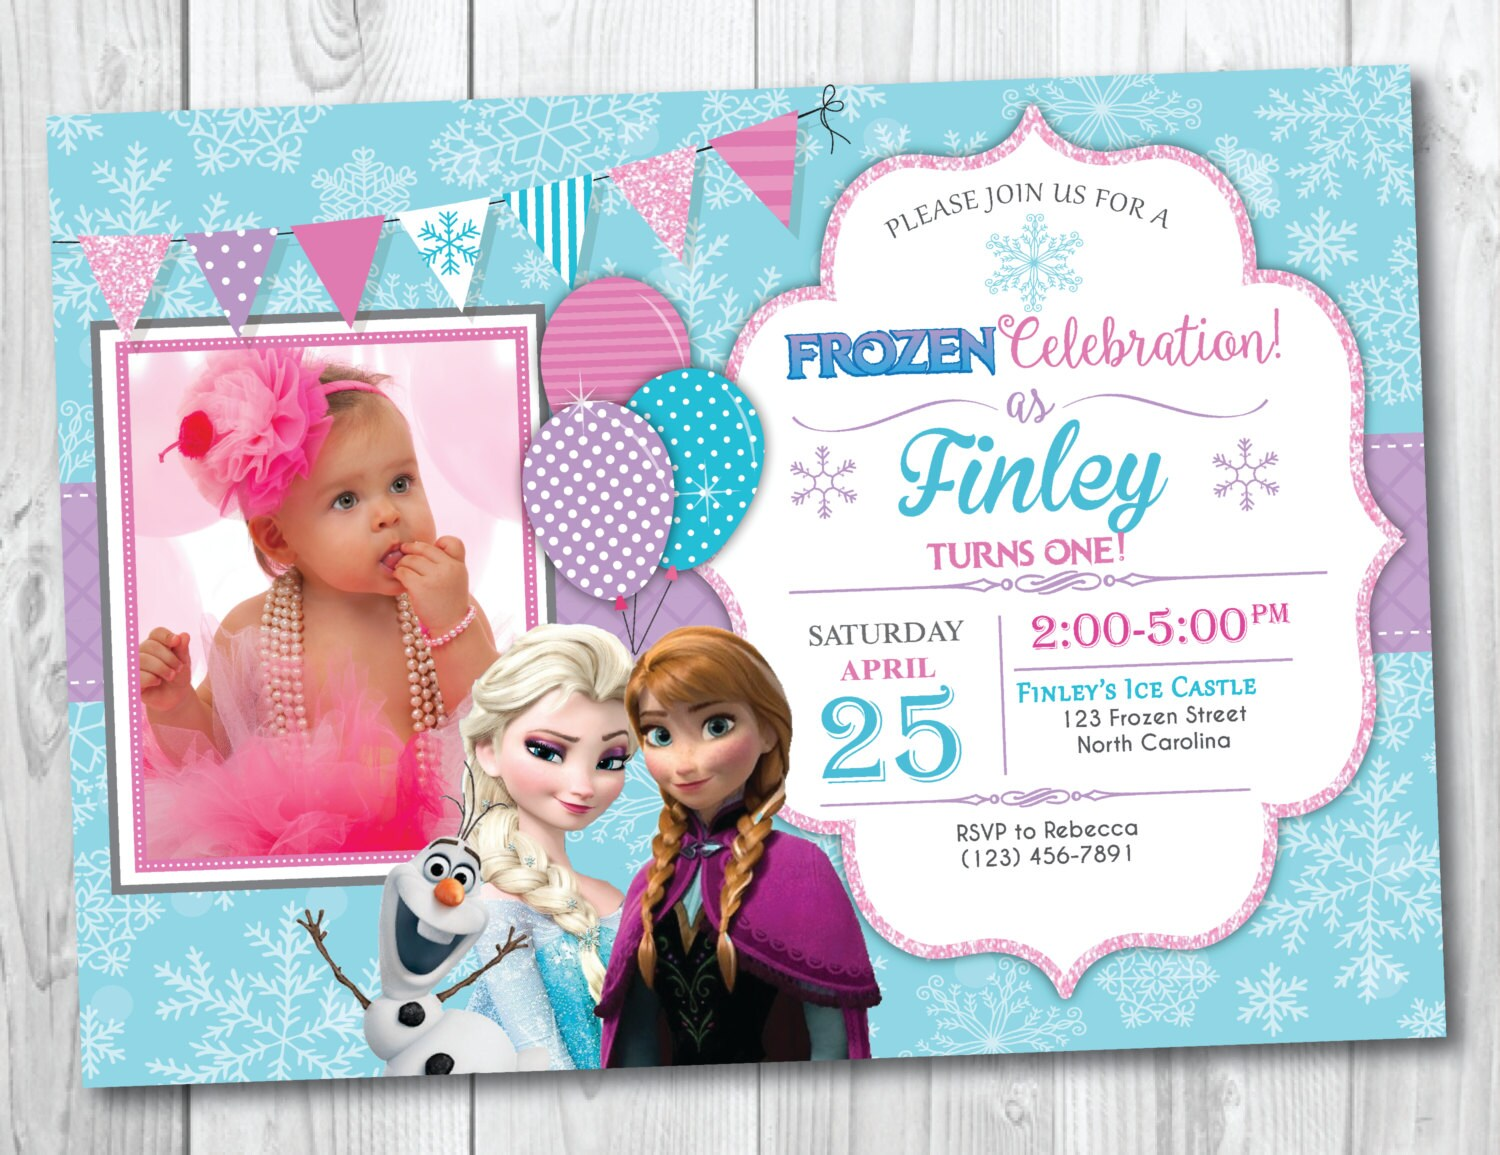 Crush image with regard to frozen invitations printable